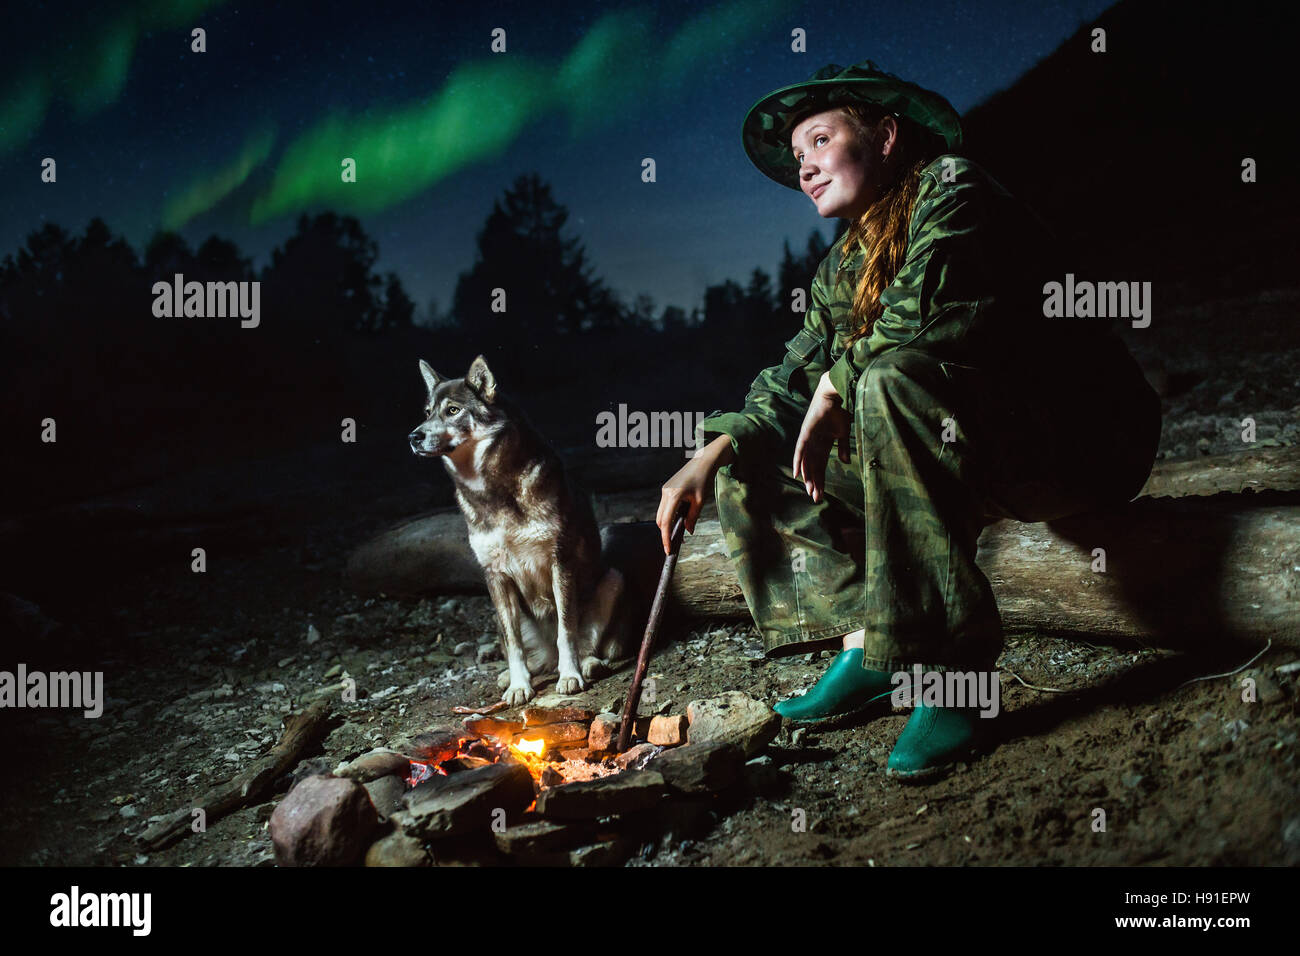 Scout girl with her dog around campfire at night  stars and aurora borealis - Stock Image